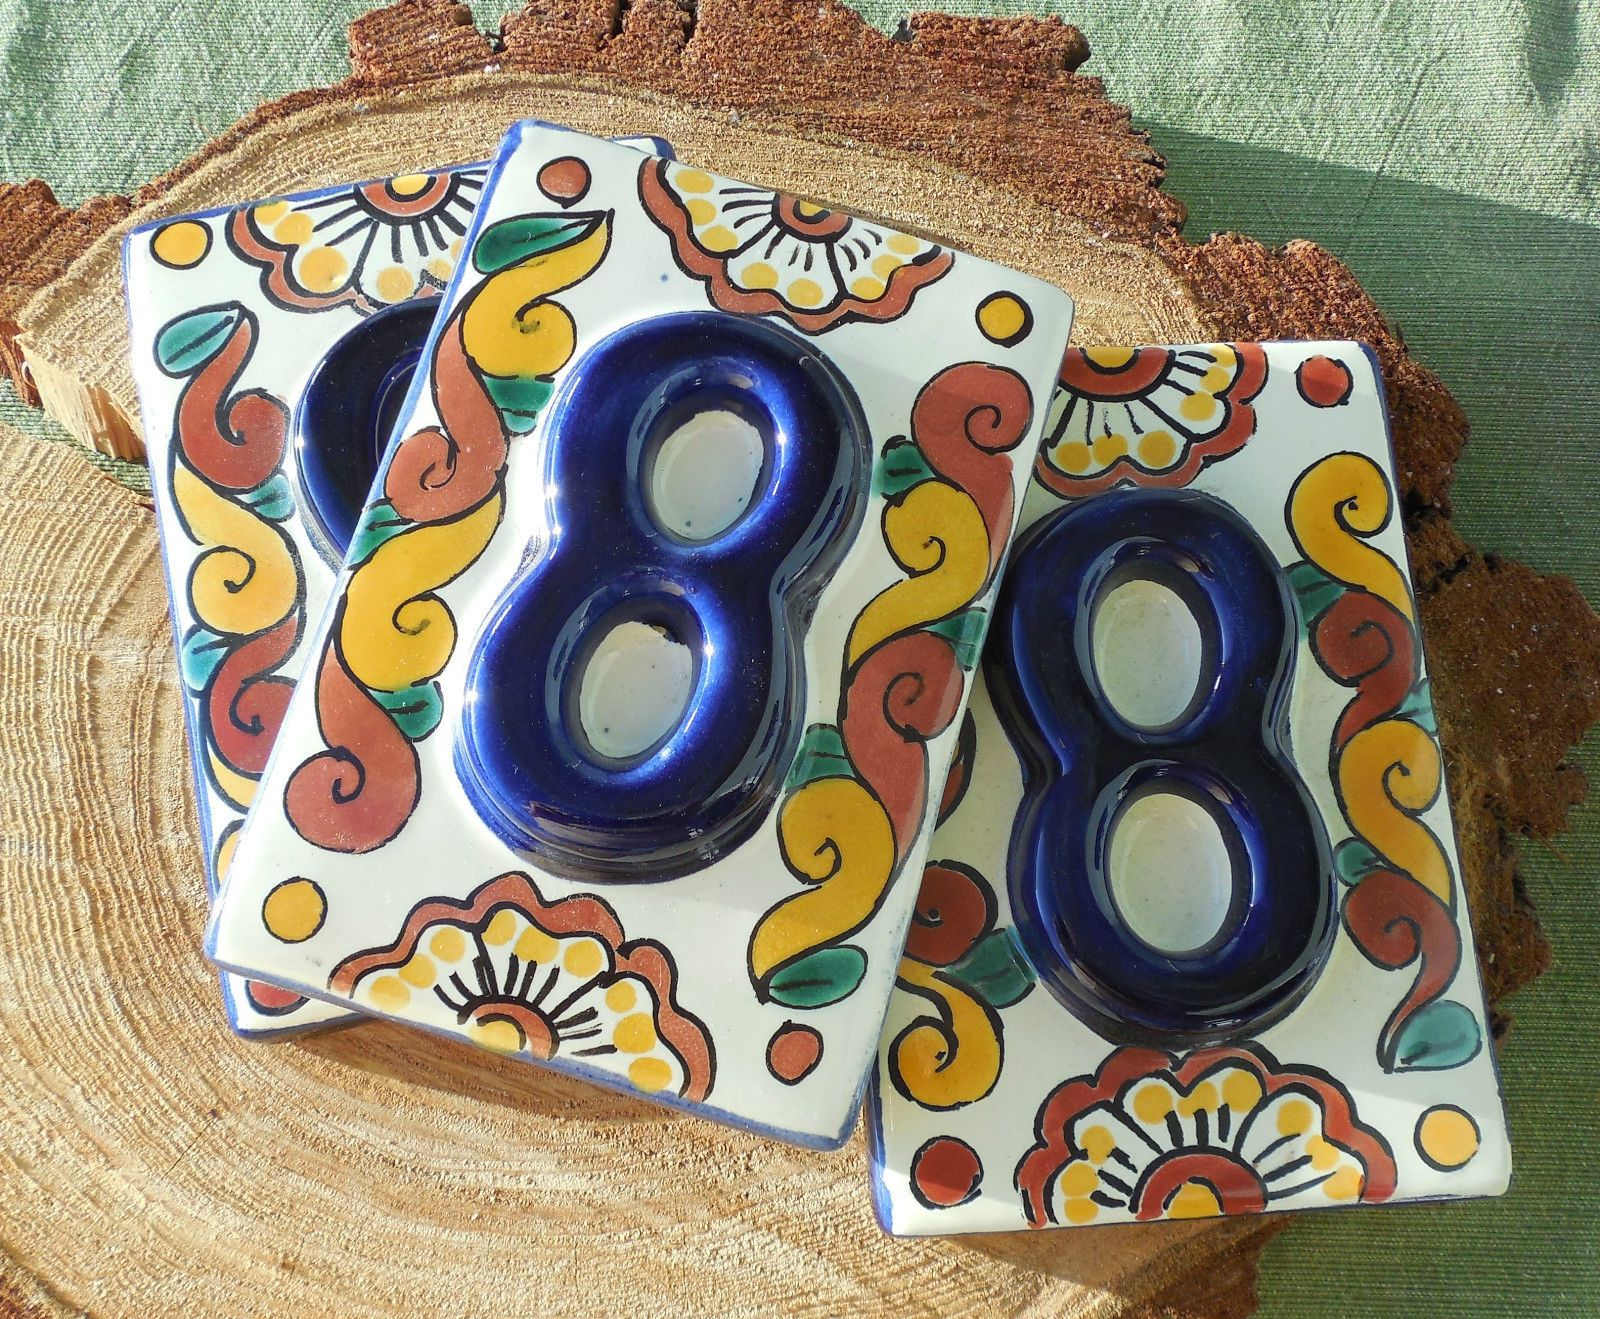 Spanish house number plaques house numbers holder spanish everyone understands about house numbers ceramic while it is a floor tile a ceramic tea strainer kitchen products as wel dailygadgetfo Image collections